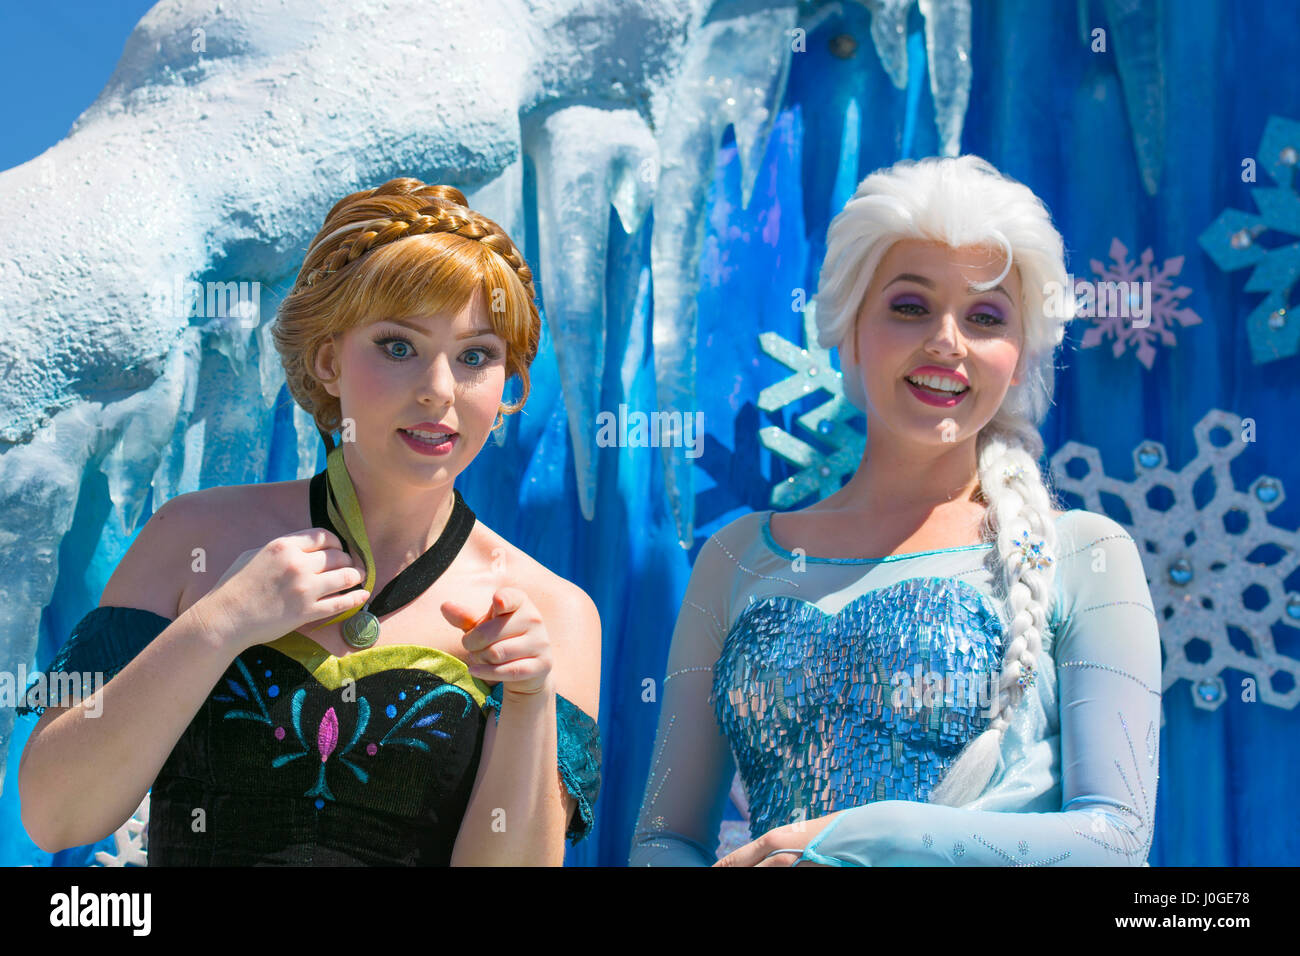 Elsa and anna anna and elsa characters disney movie frozen elsa and anna anna and elsa characters disney movie frozen orlando florida voltagebd Gallery